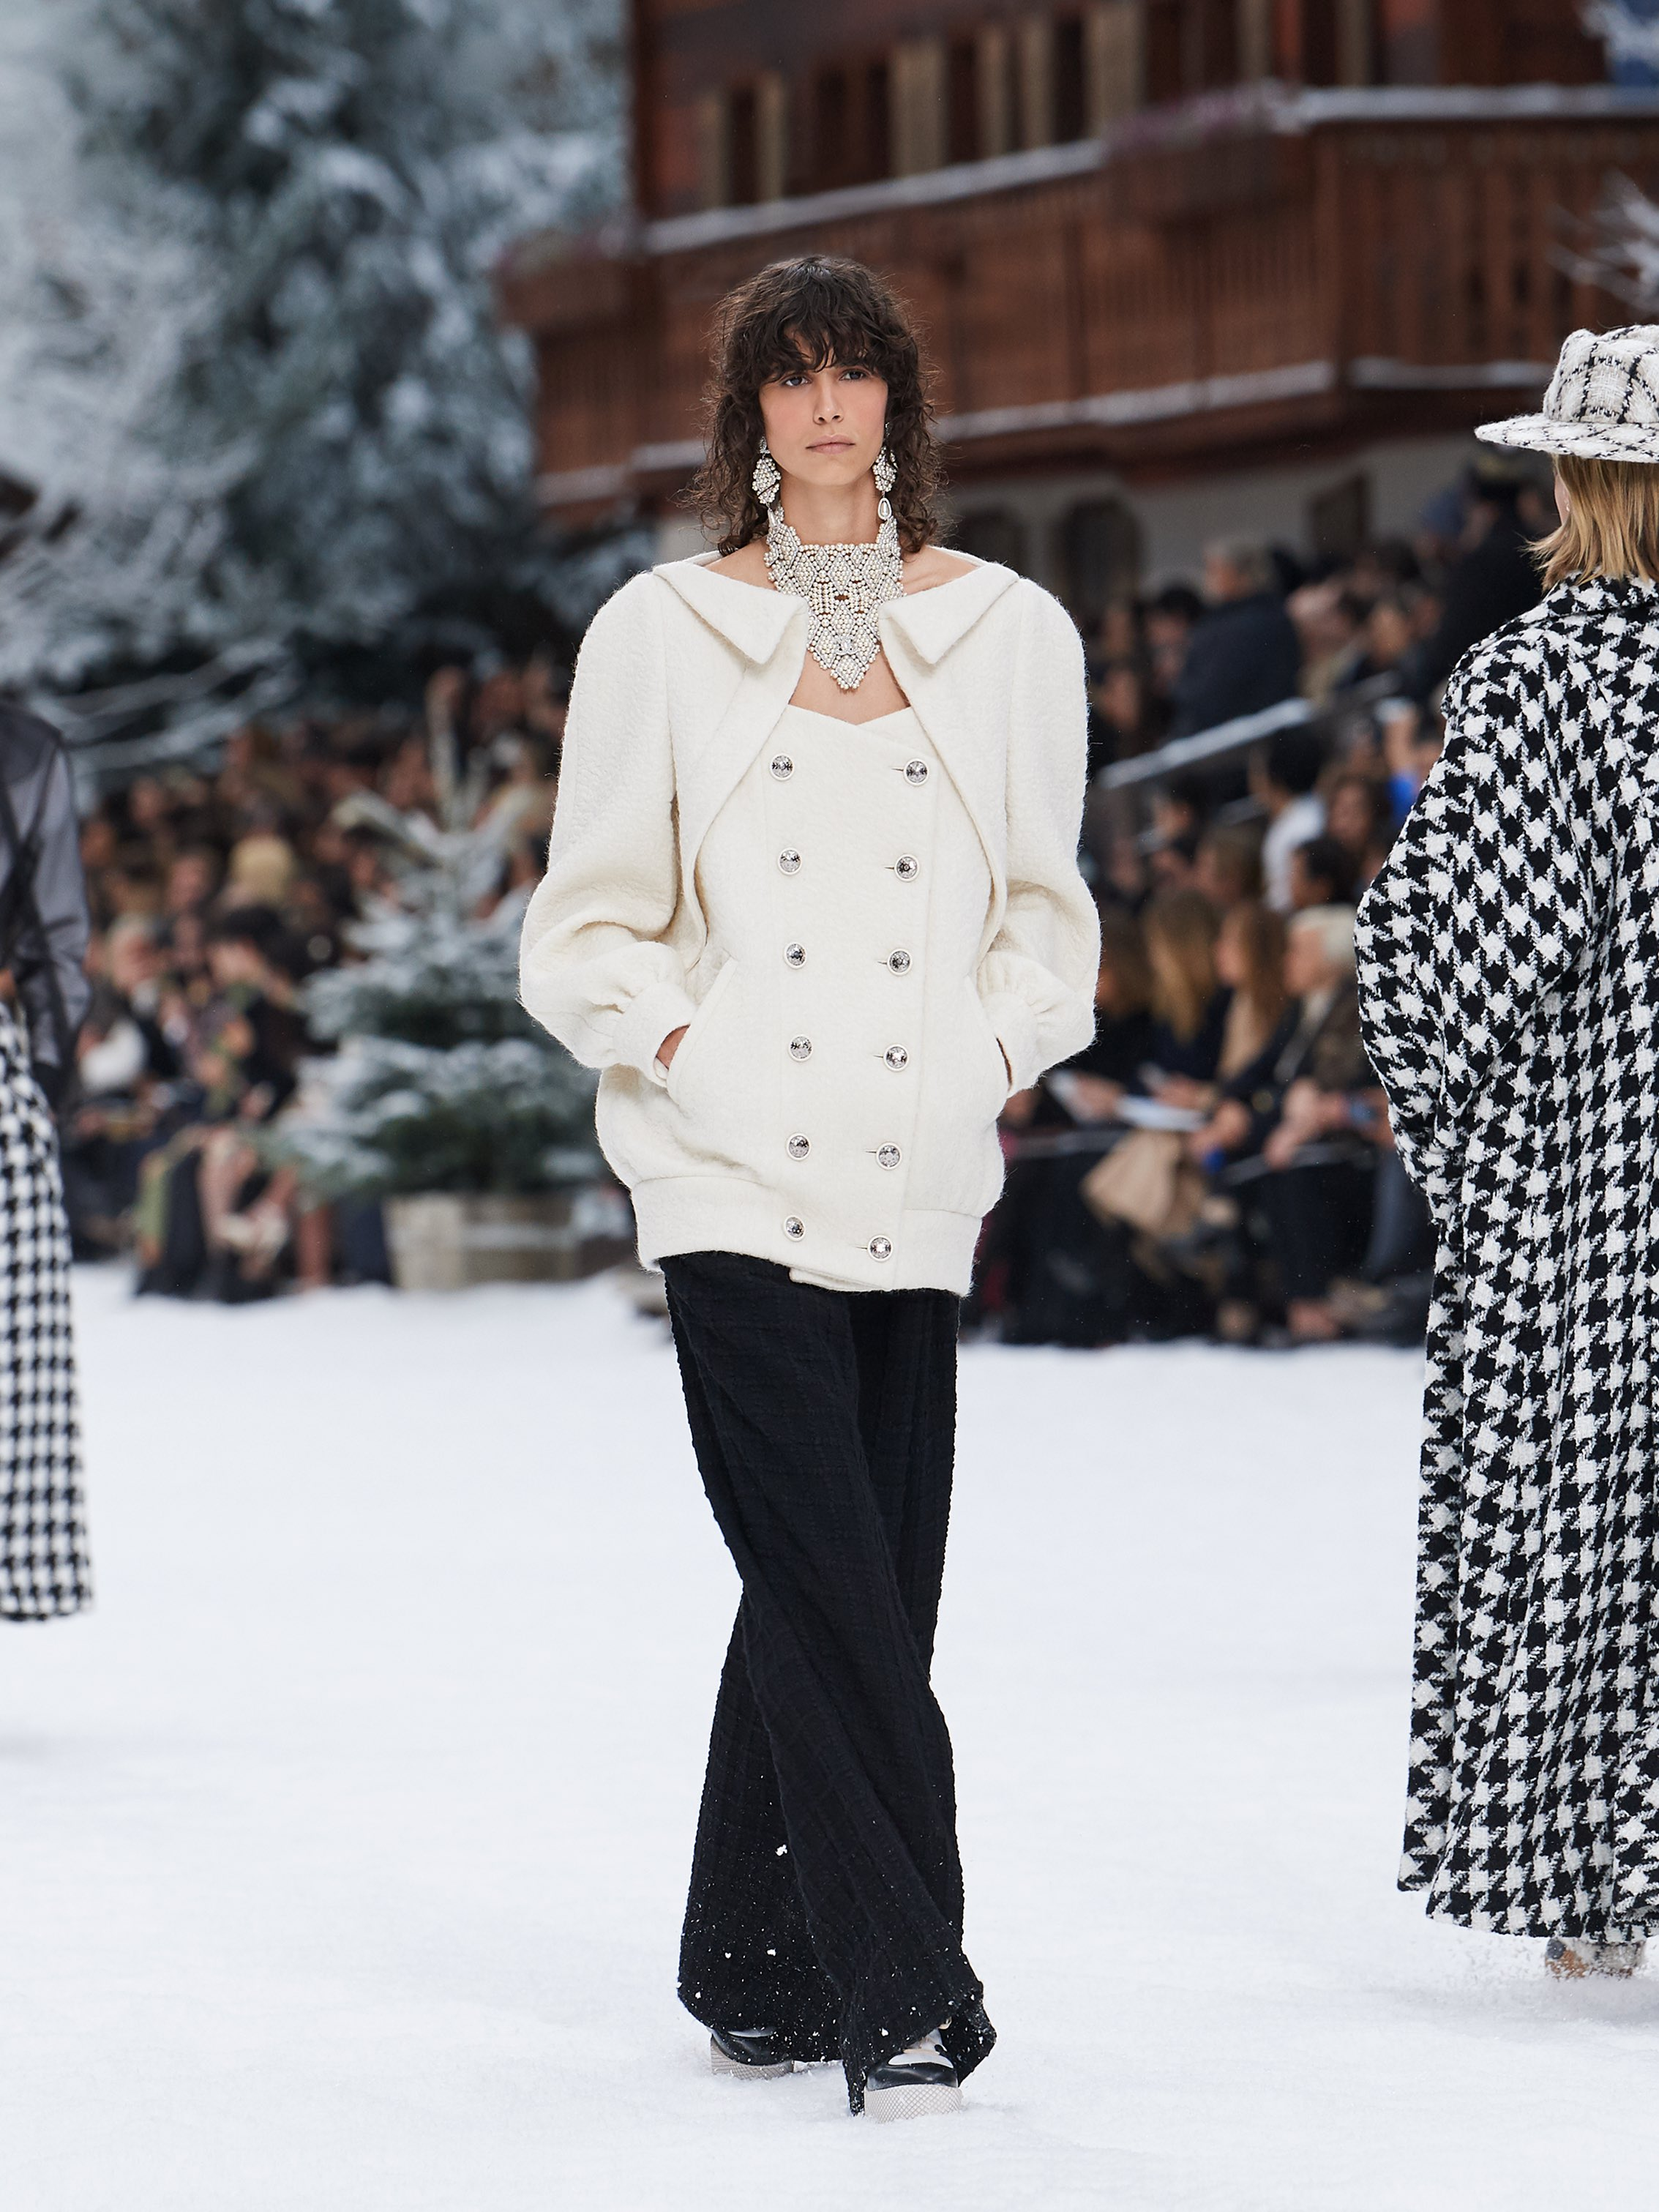 Chanel AW19 Paris Fashion Week show white top